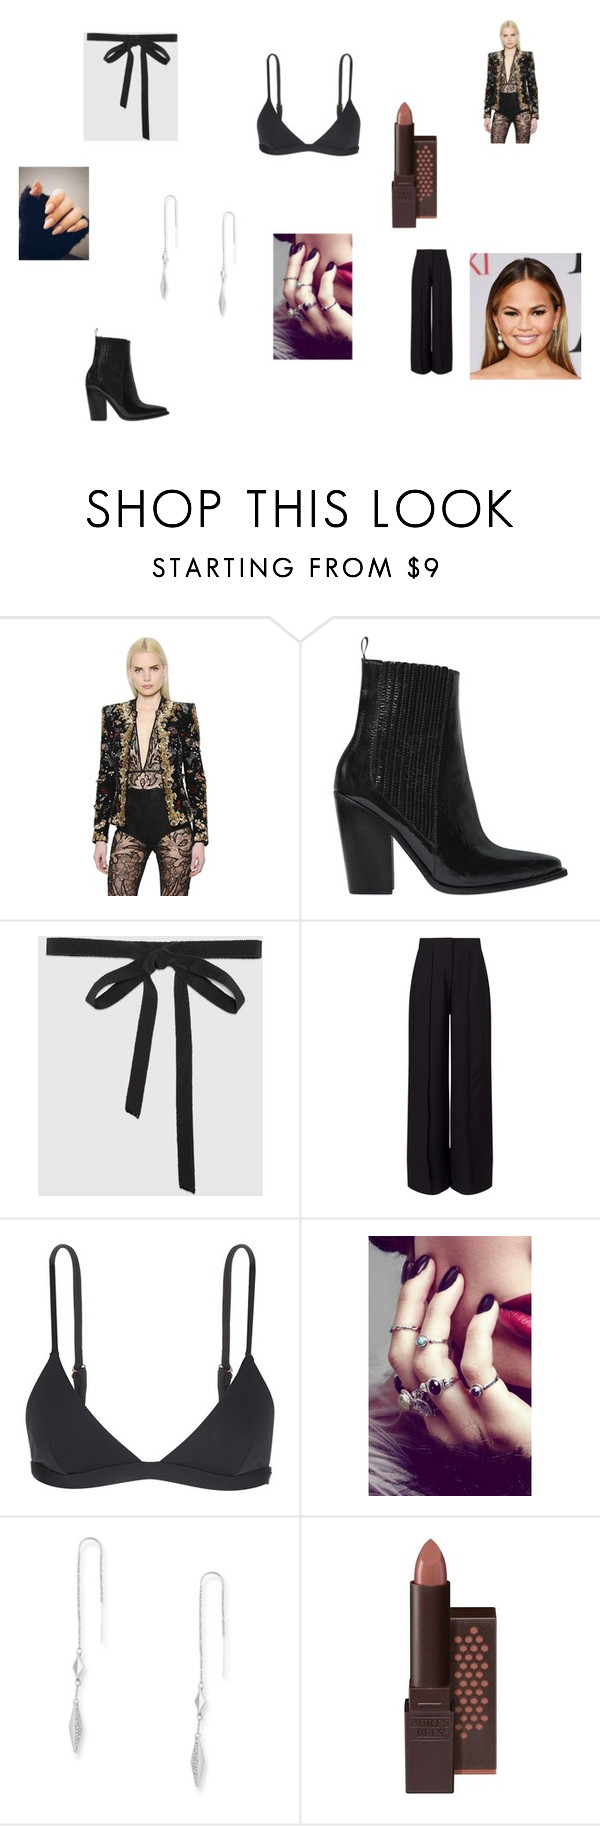 """Untitled #701"" by chicsetter-14 on Polyvore featuring Zuhair Murad, Sonia Rykiel, Gucci, Miss Selfridge, Mara Hoffman, Rock 'N Rose, FOSSIL and Burt's Bees"